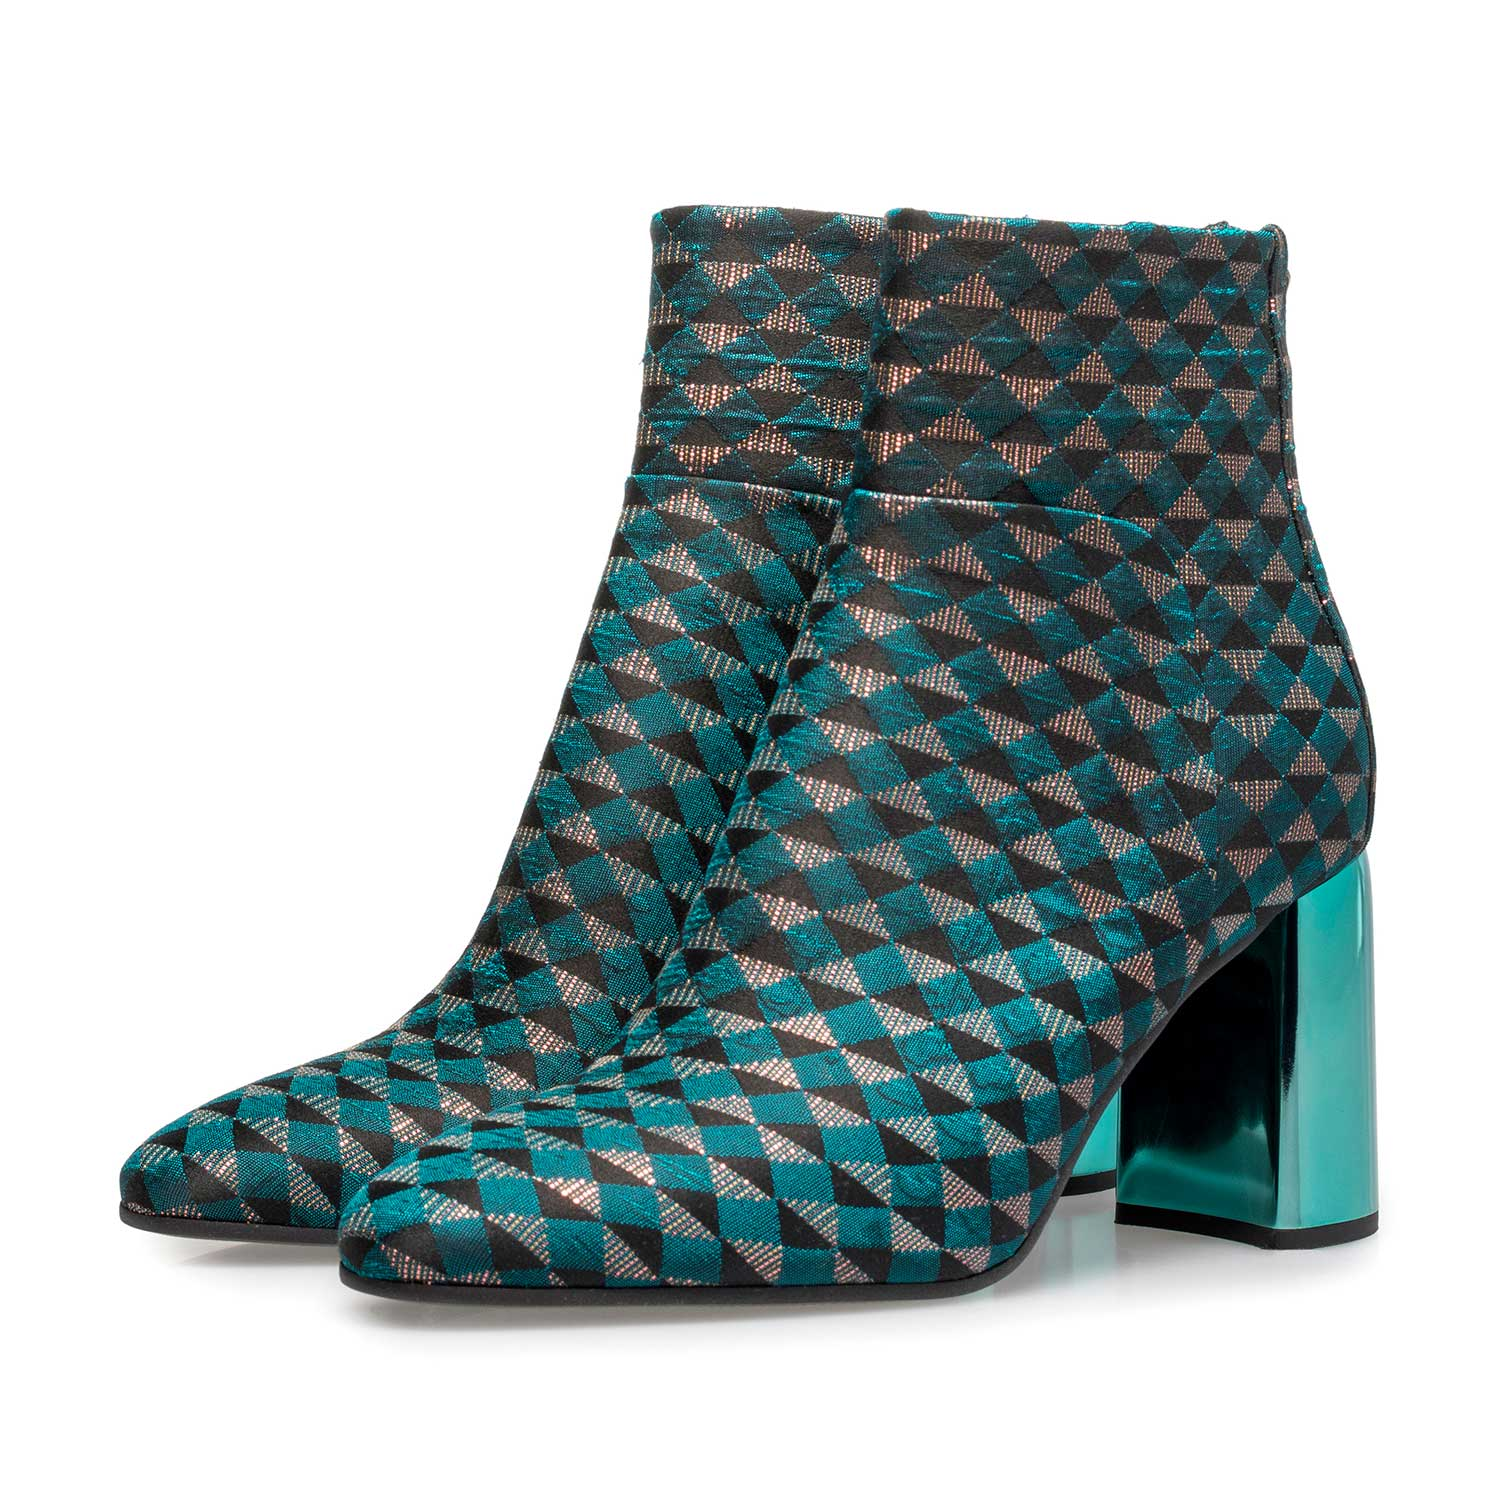 85624/07 - Green ankle boots with graphic print